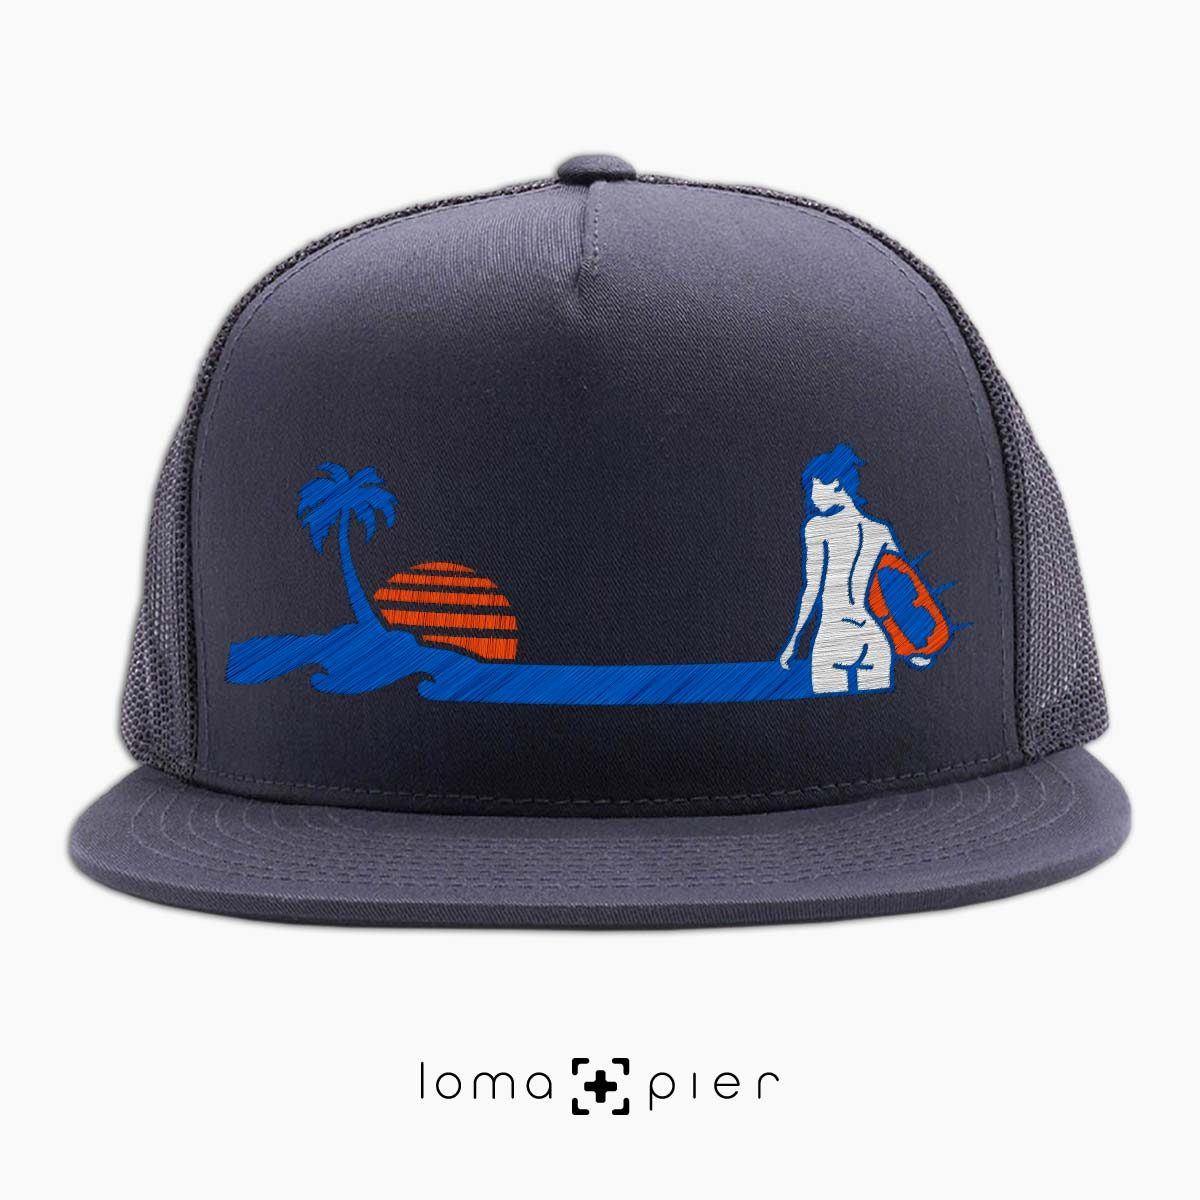 SURF NAKED hermosa beach charcoal netback trucker hat design by KIKICUTT for loma+pier hat store